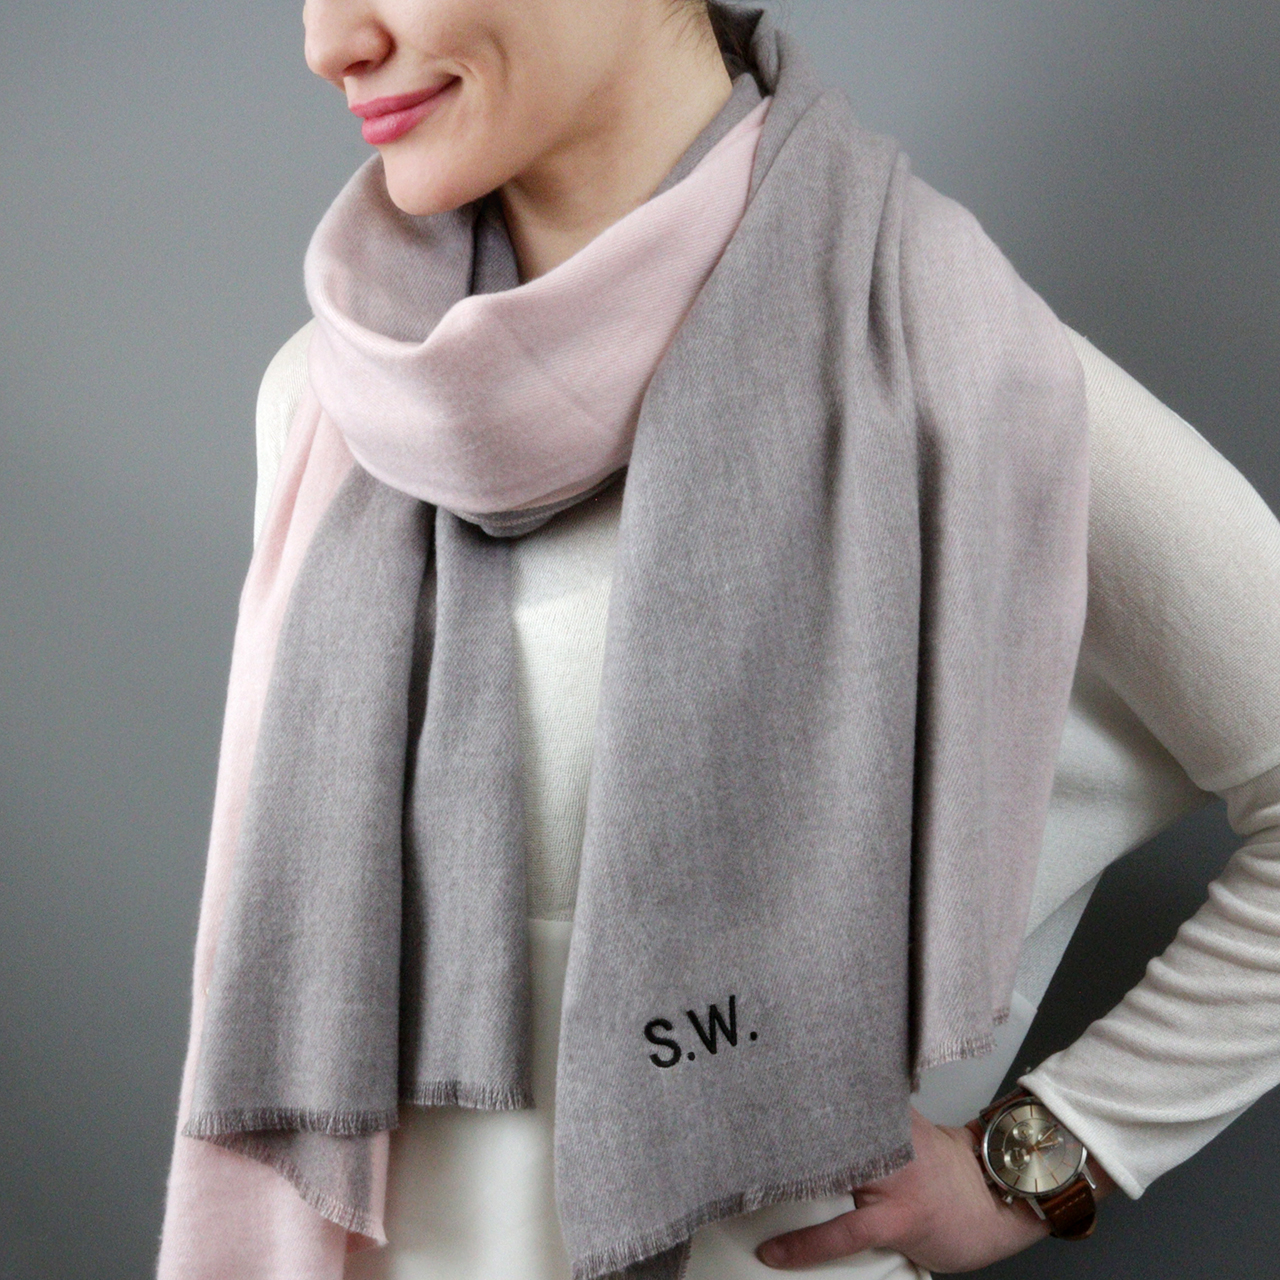 Personalised Cashmere Blend Ombre Scarf by Studio Hop - £30